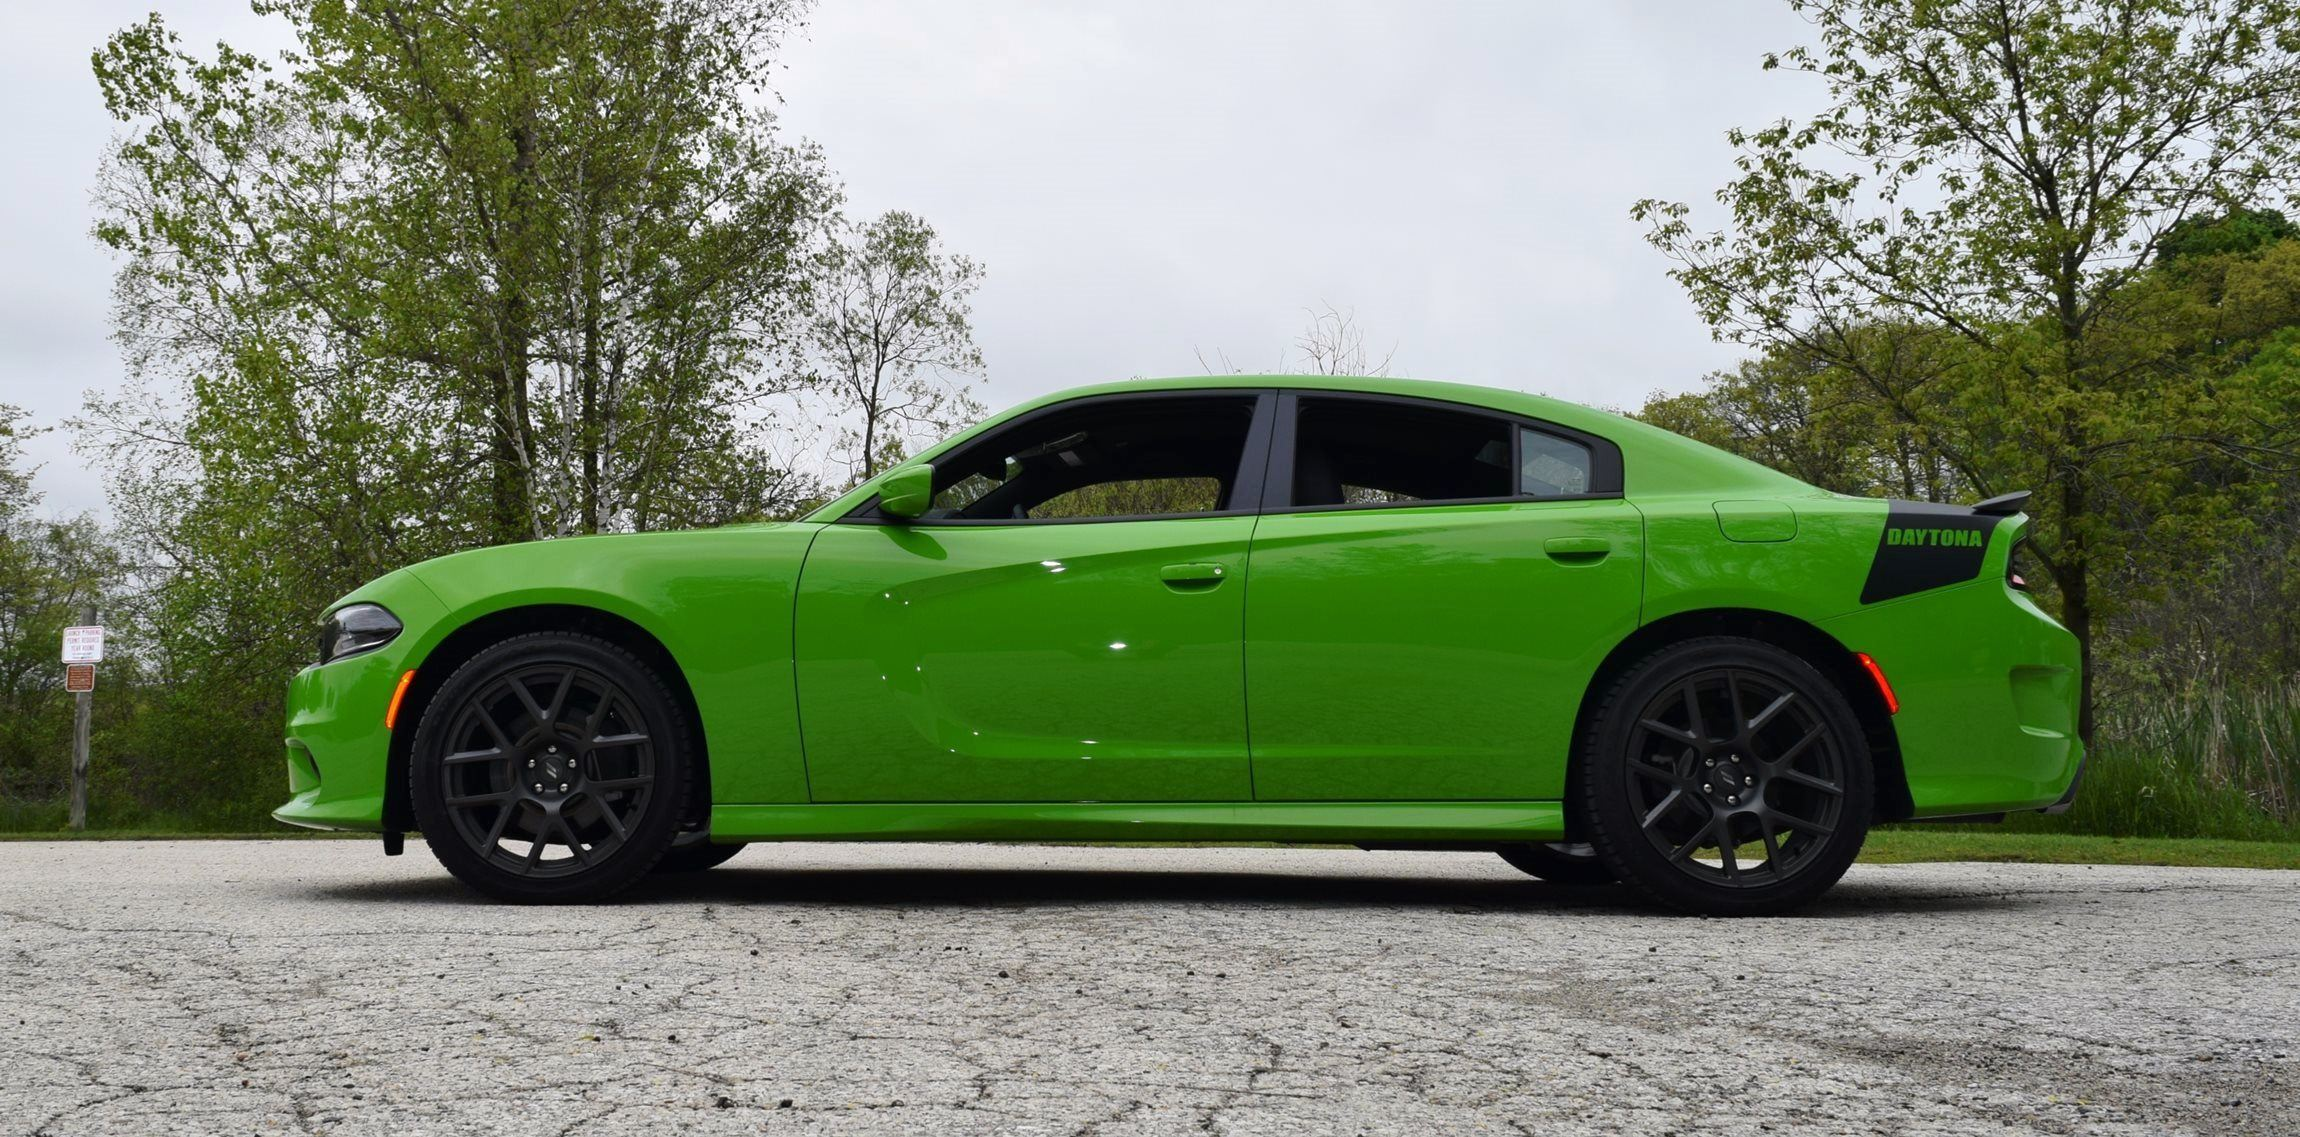 2017 Dodge Charger DAYTONA 33